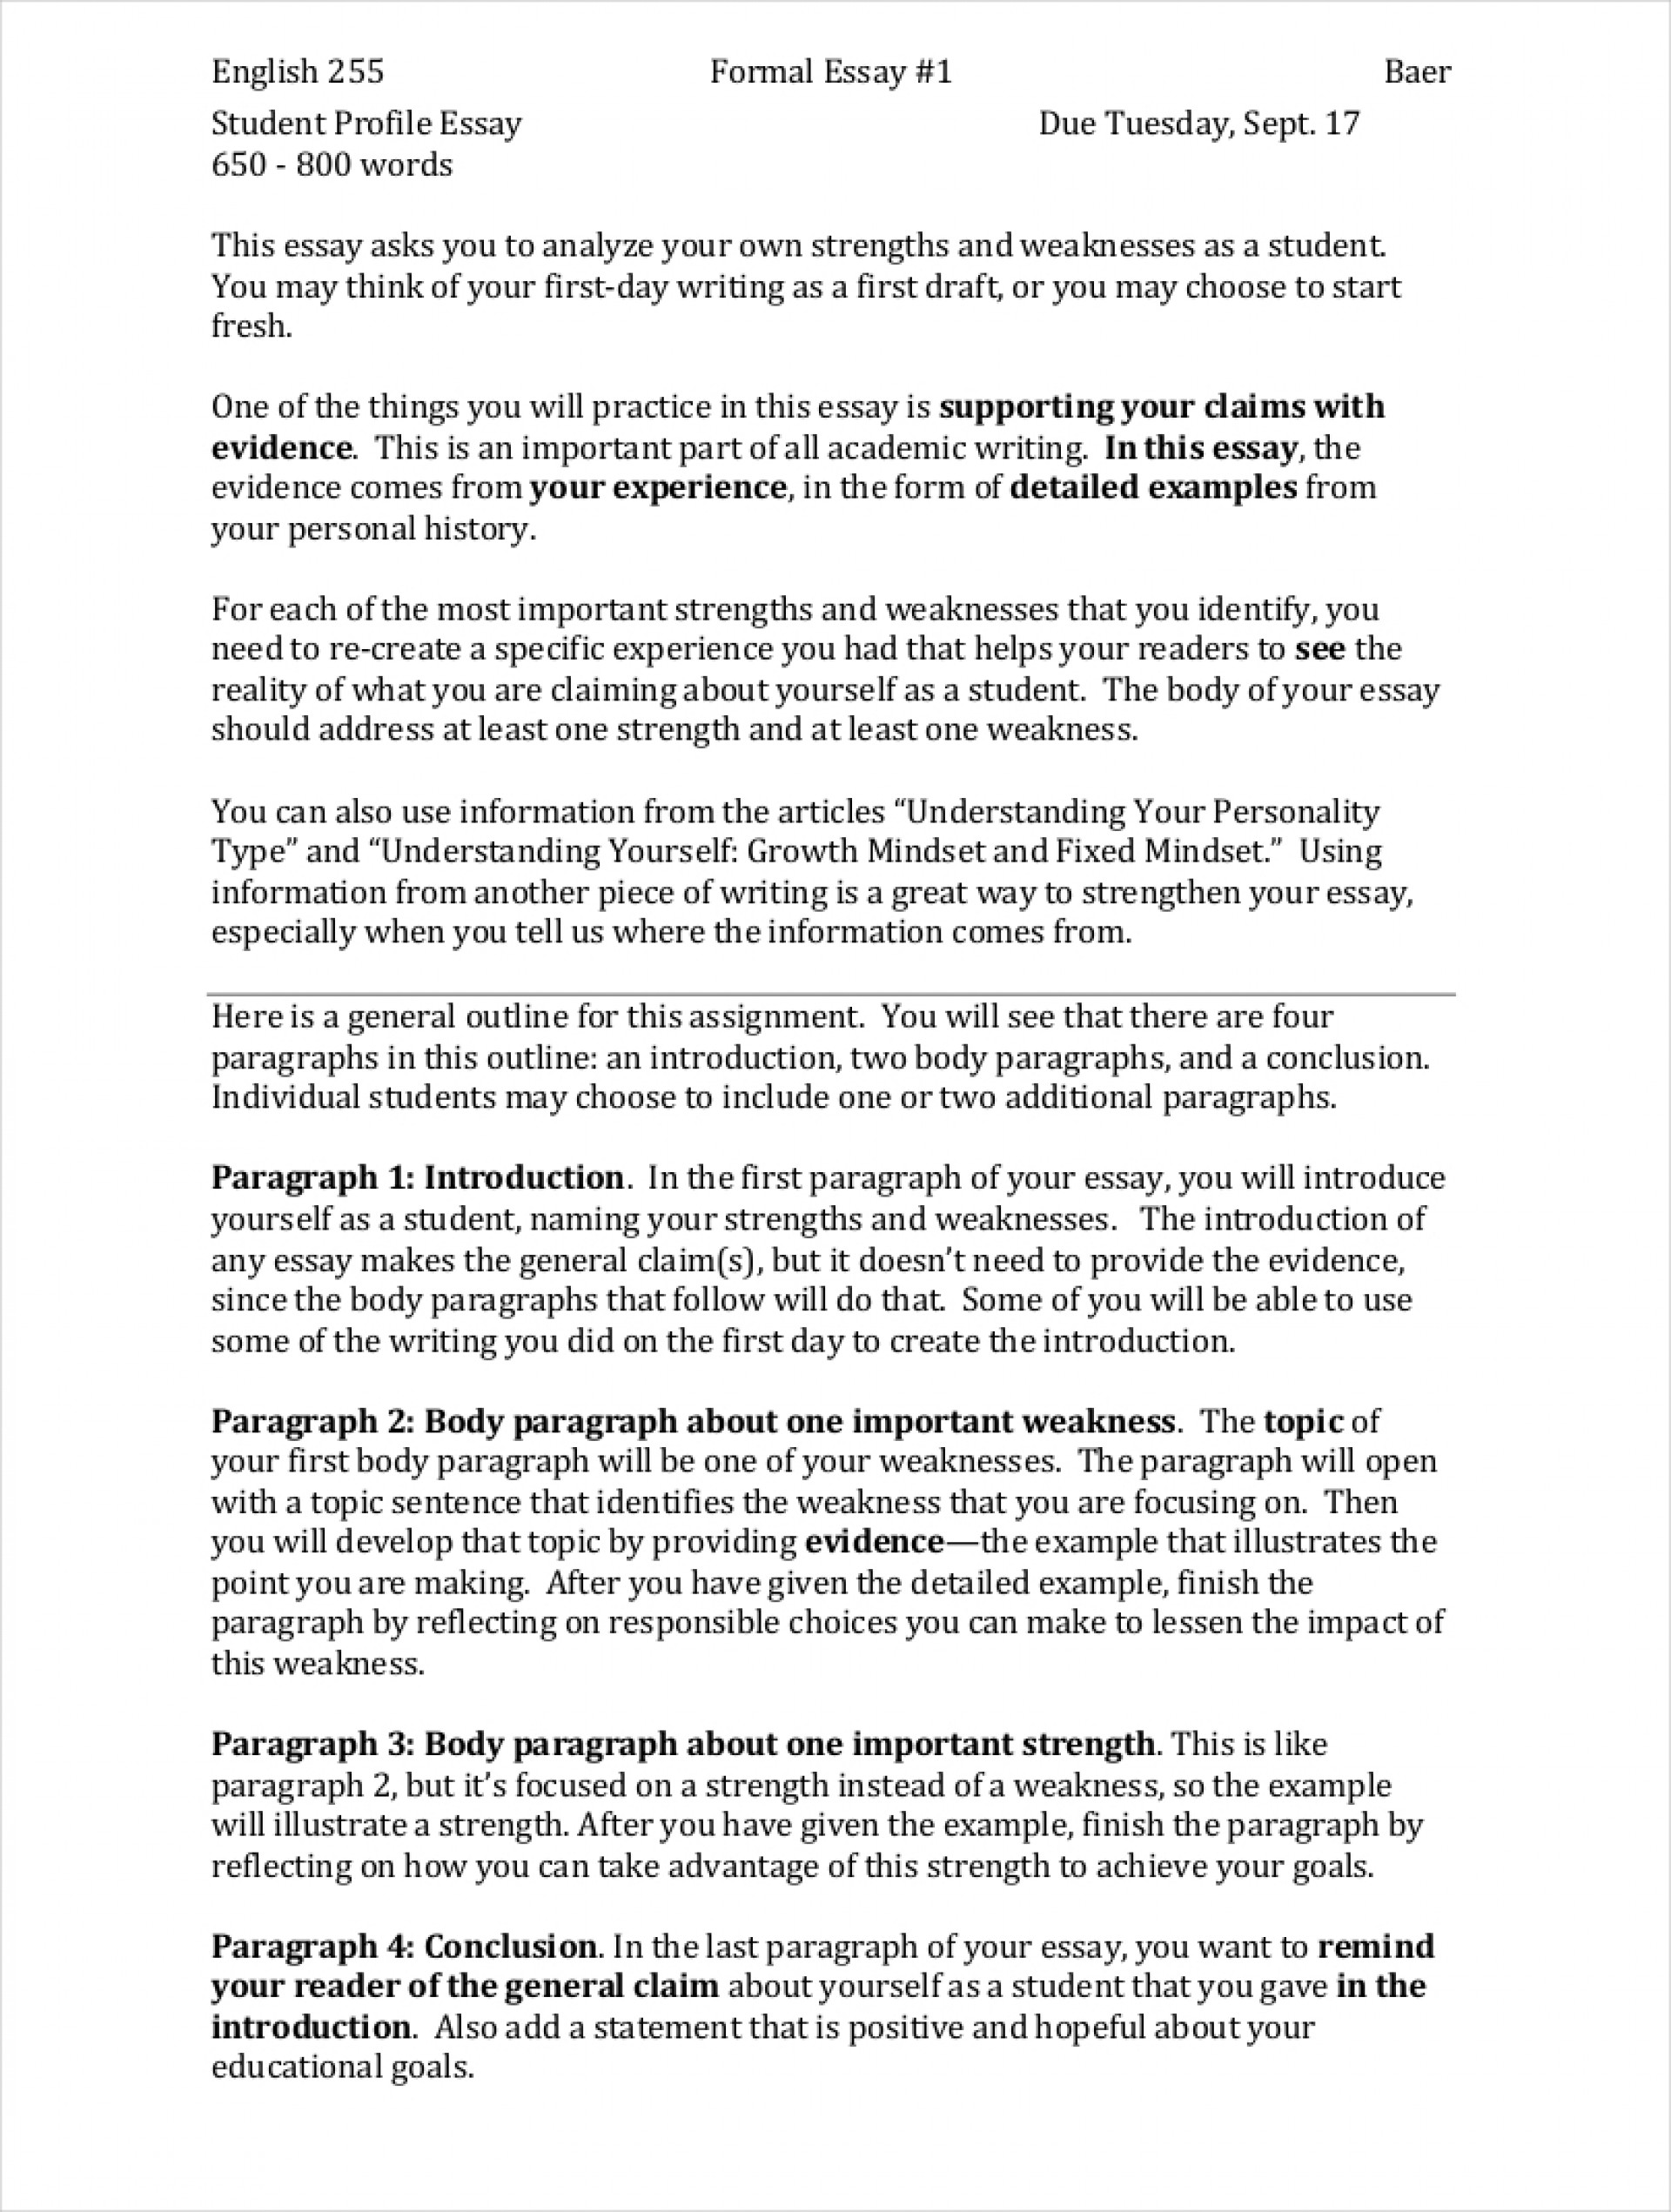 024 Examples Of Profile Essays Samples Formal Free Pdf Format Download Student Essay Sa For This Writing Assignment Your Opening Paragraph Needs To Include The Following Marvelous College Community Company 1920